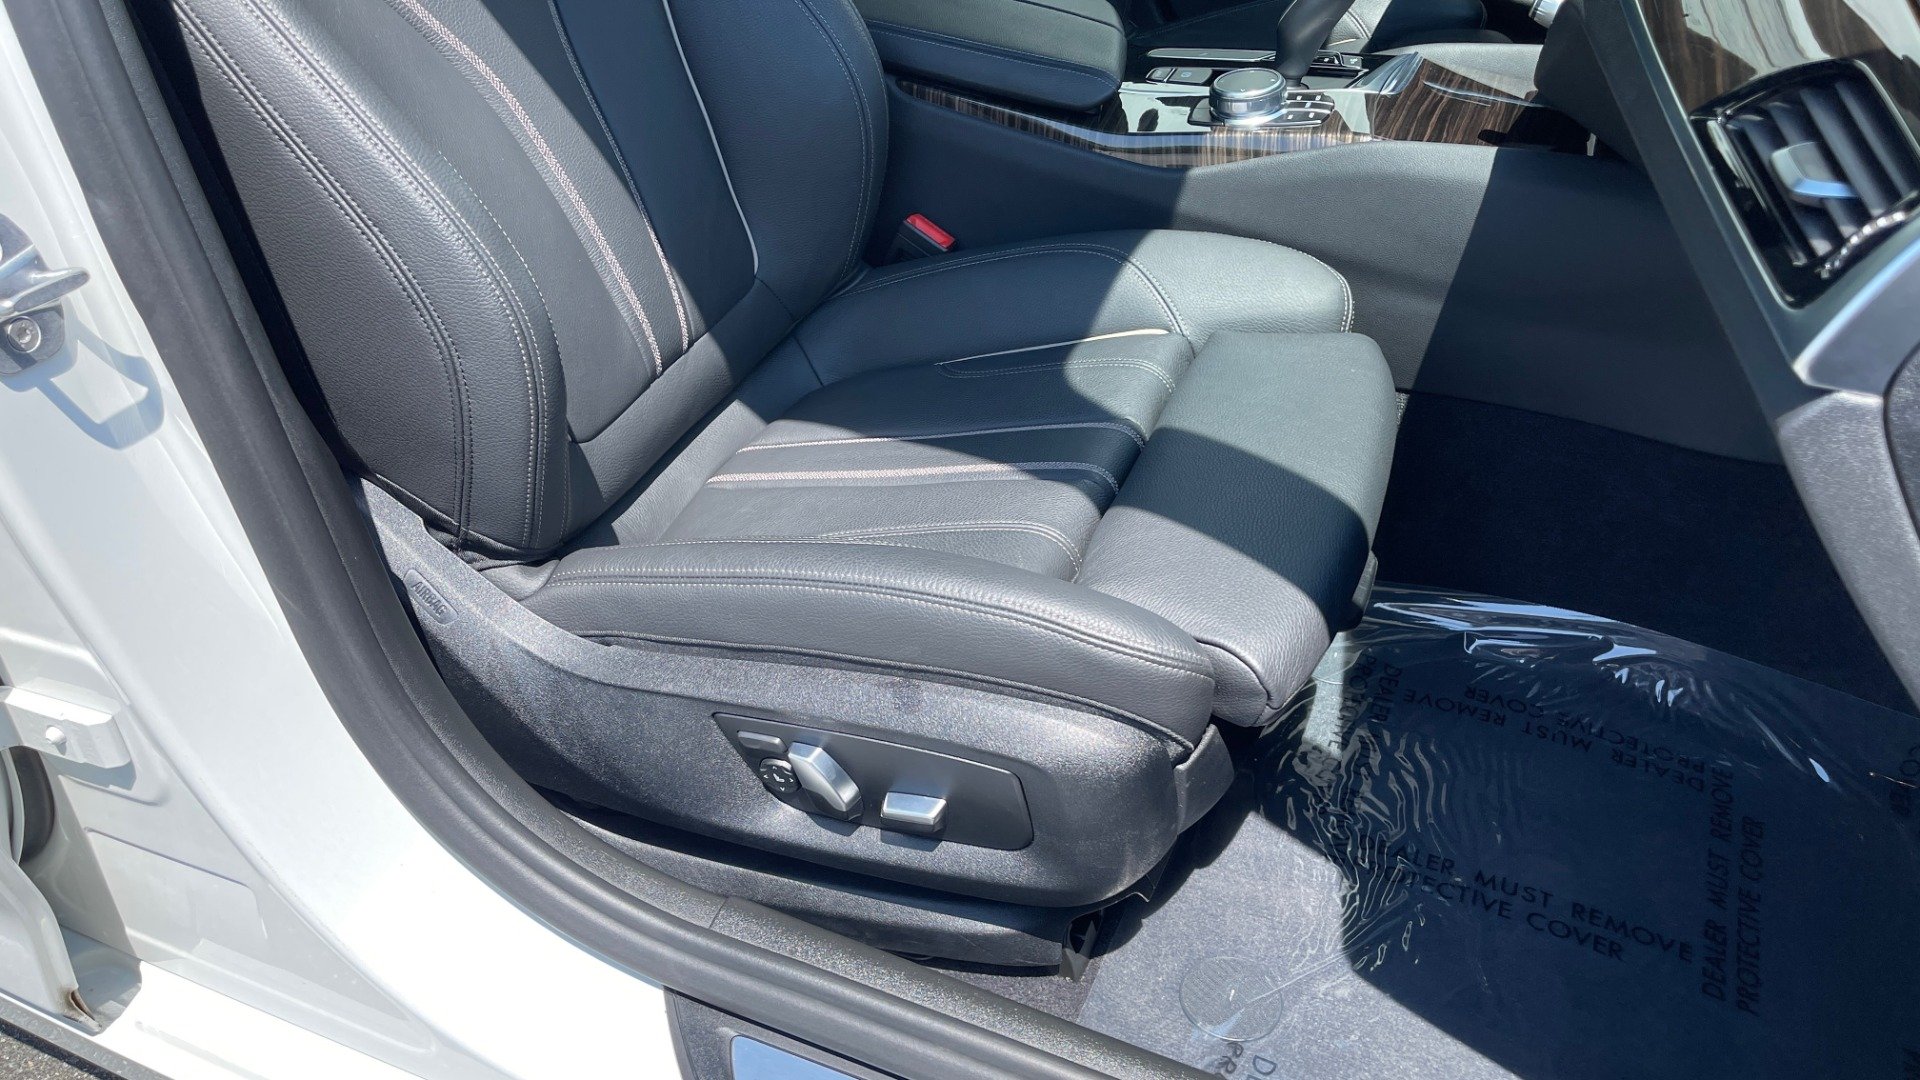 Used 2018 BMW 5 SERIES 540IXDRIVE PREMIUM / PARK ASSIST / KEYLESS ENTRY / SUNROOF / REARVIEW for sale $42,995 at Formula Imports in Charlotte NC 28227 66